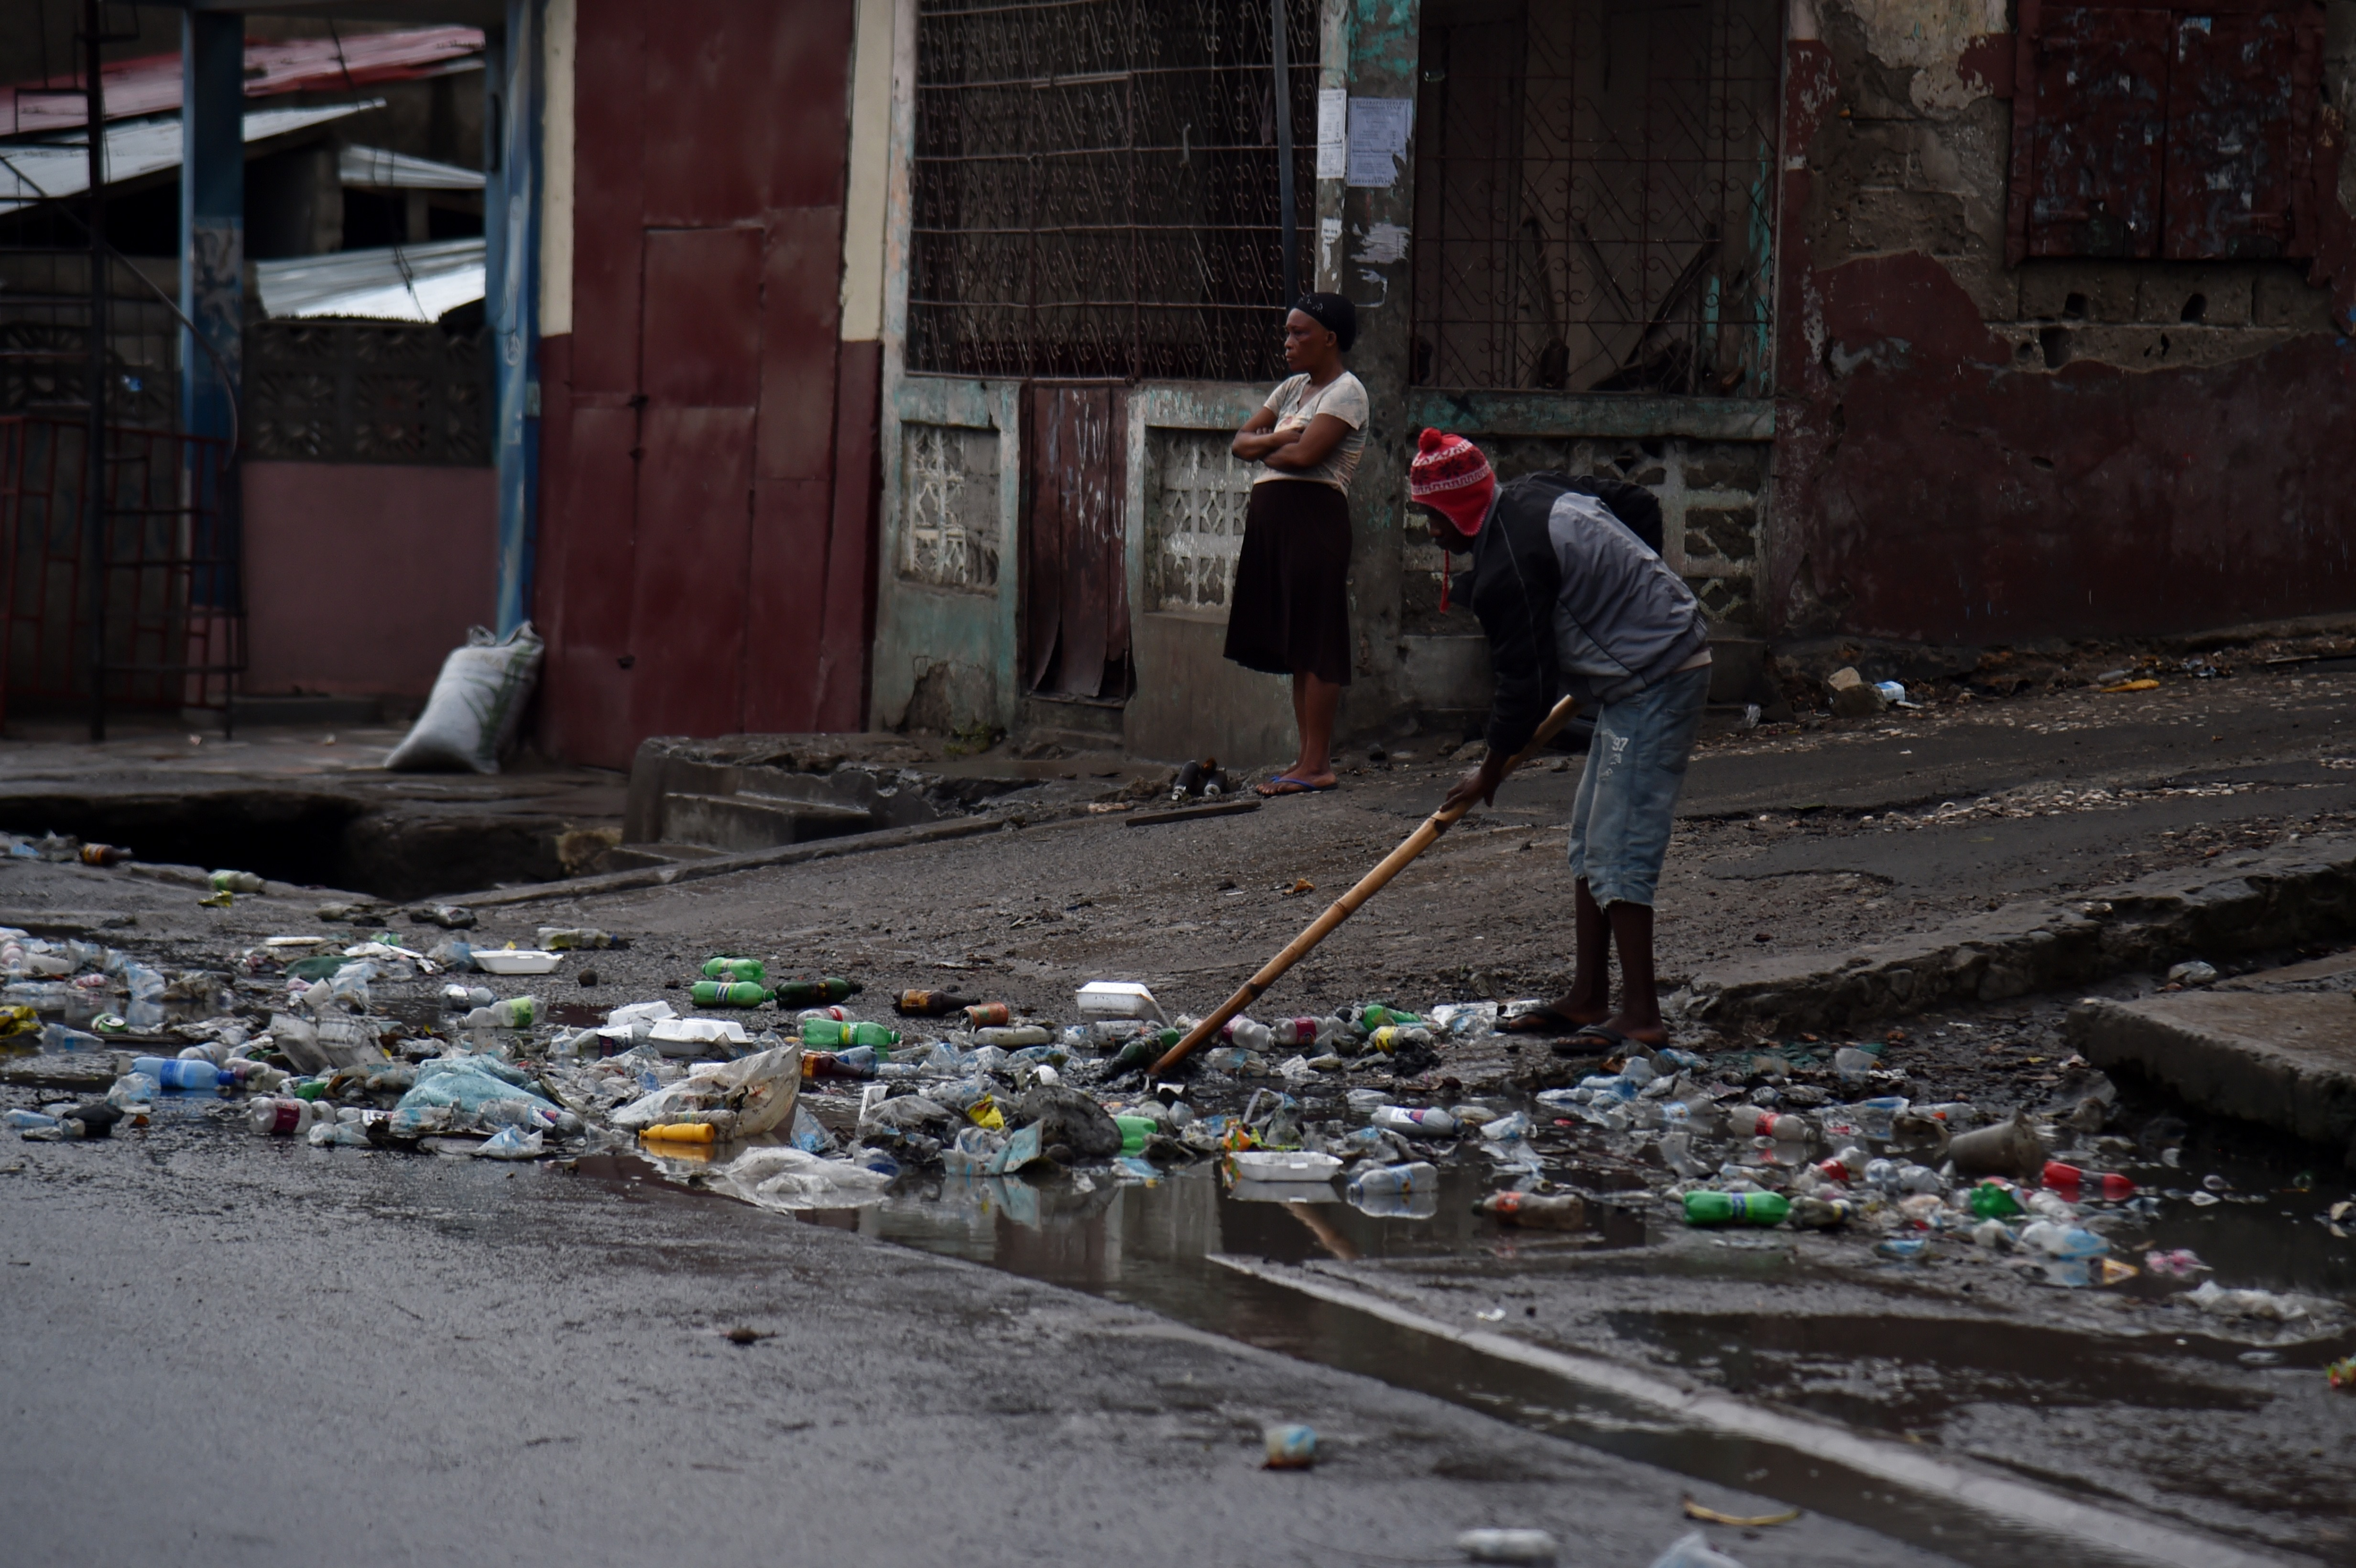 A man cleans after rains fell during the night before the arrival of Hurricane Irma, in Cap-Haitien, Haiti, on September 7, 2017.